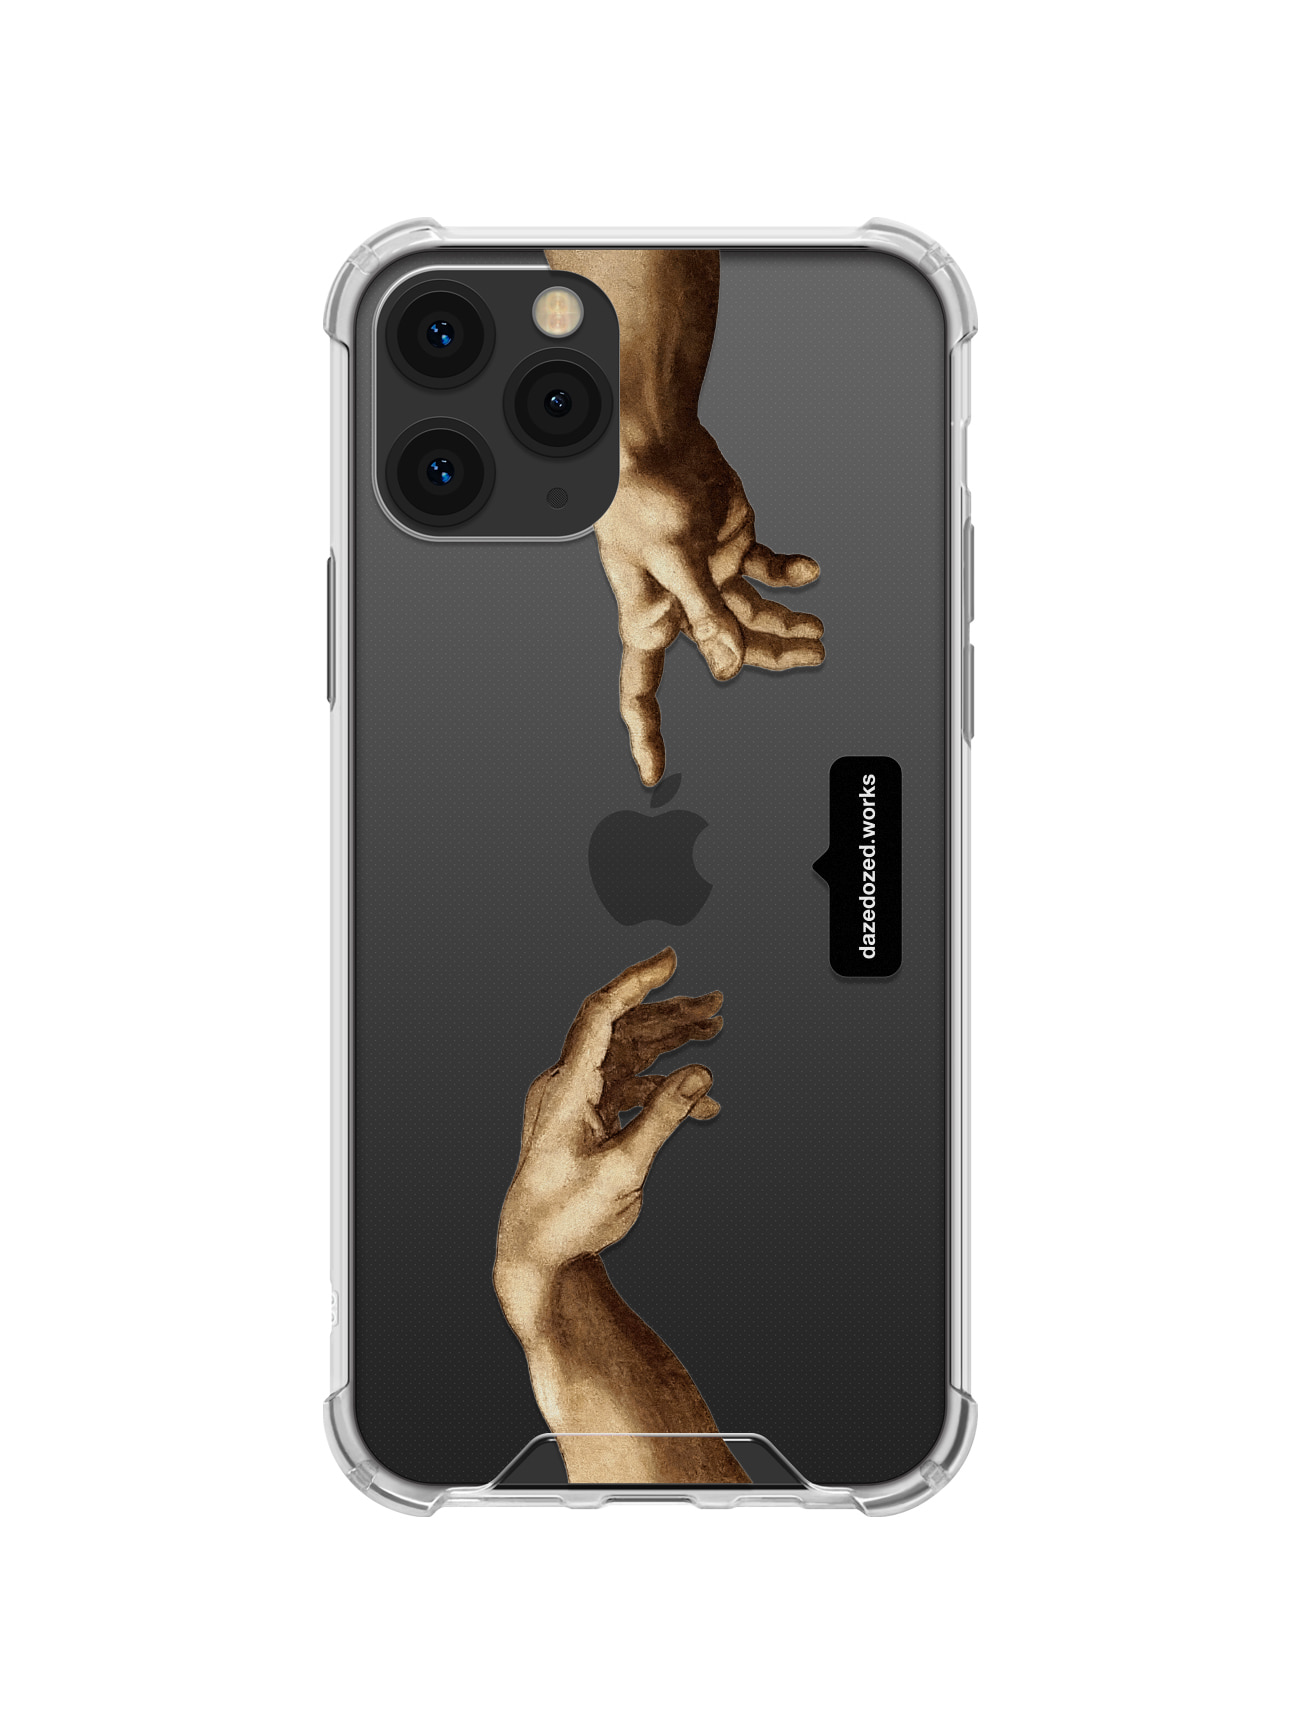 Michelangelo, Hands Detail Phone Case, 가로 타입